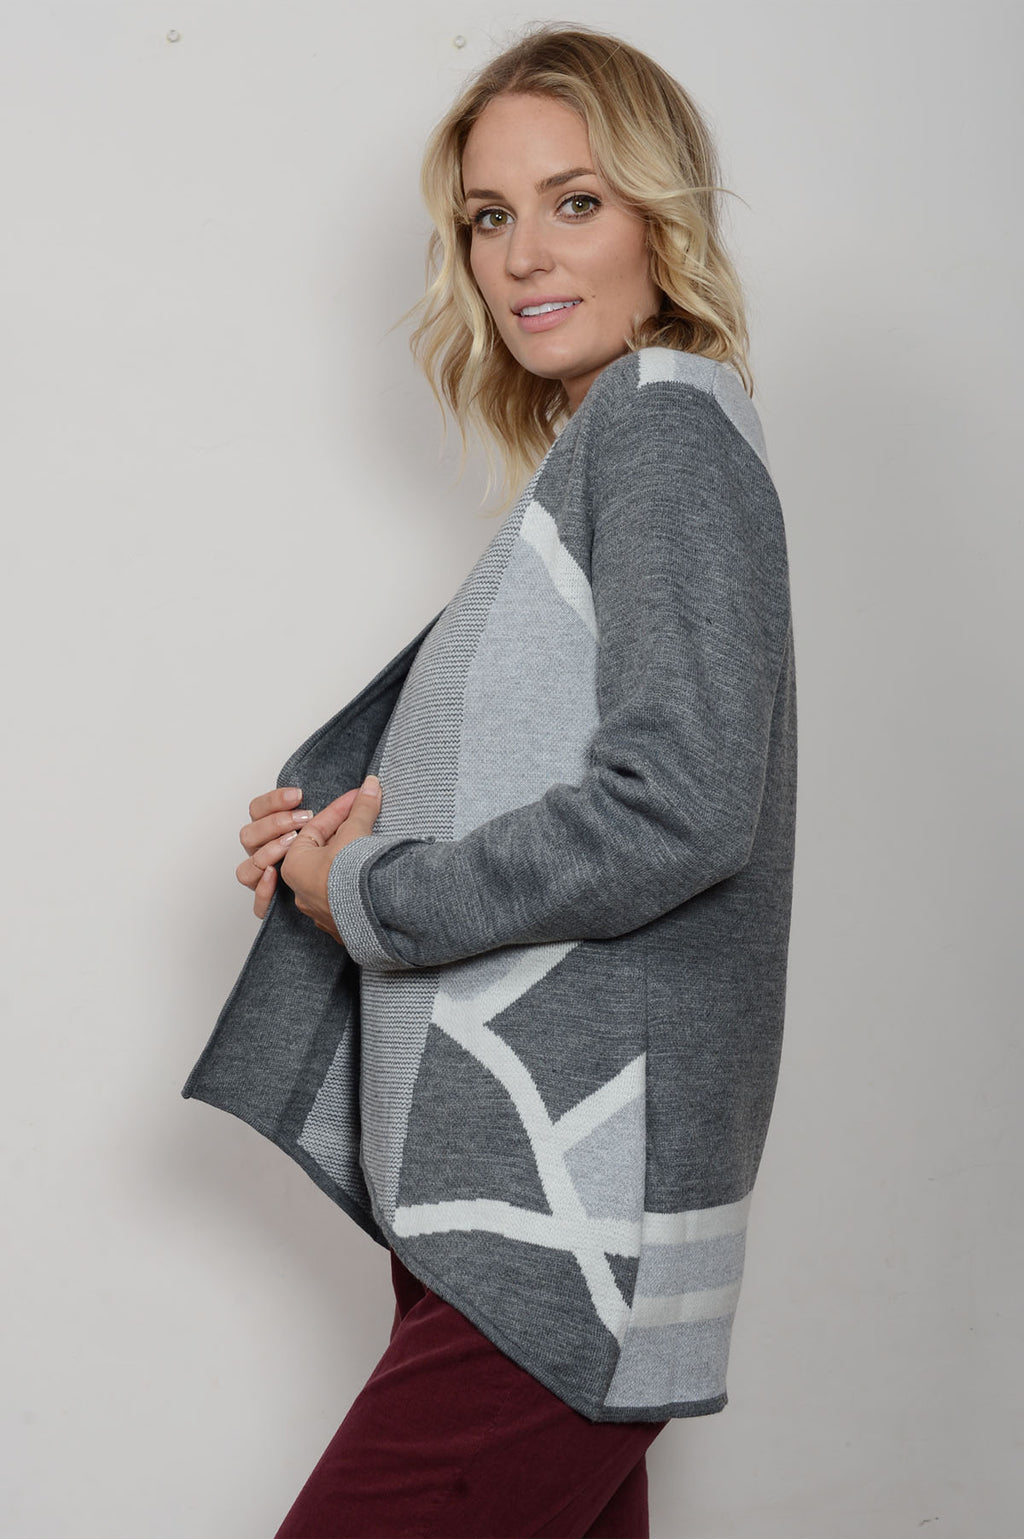 pappa fashions abstract pattern womens sweater in gray